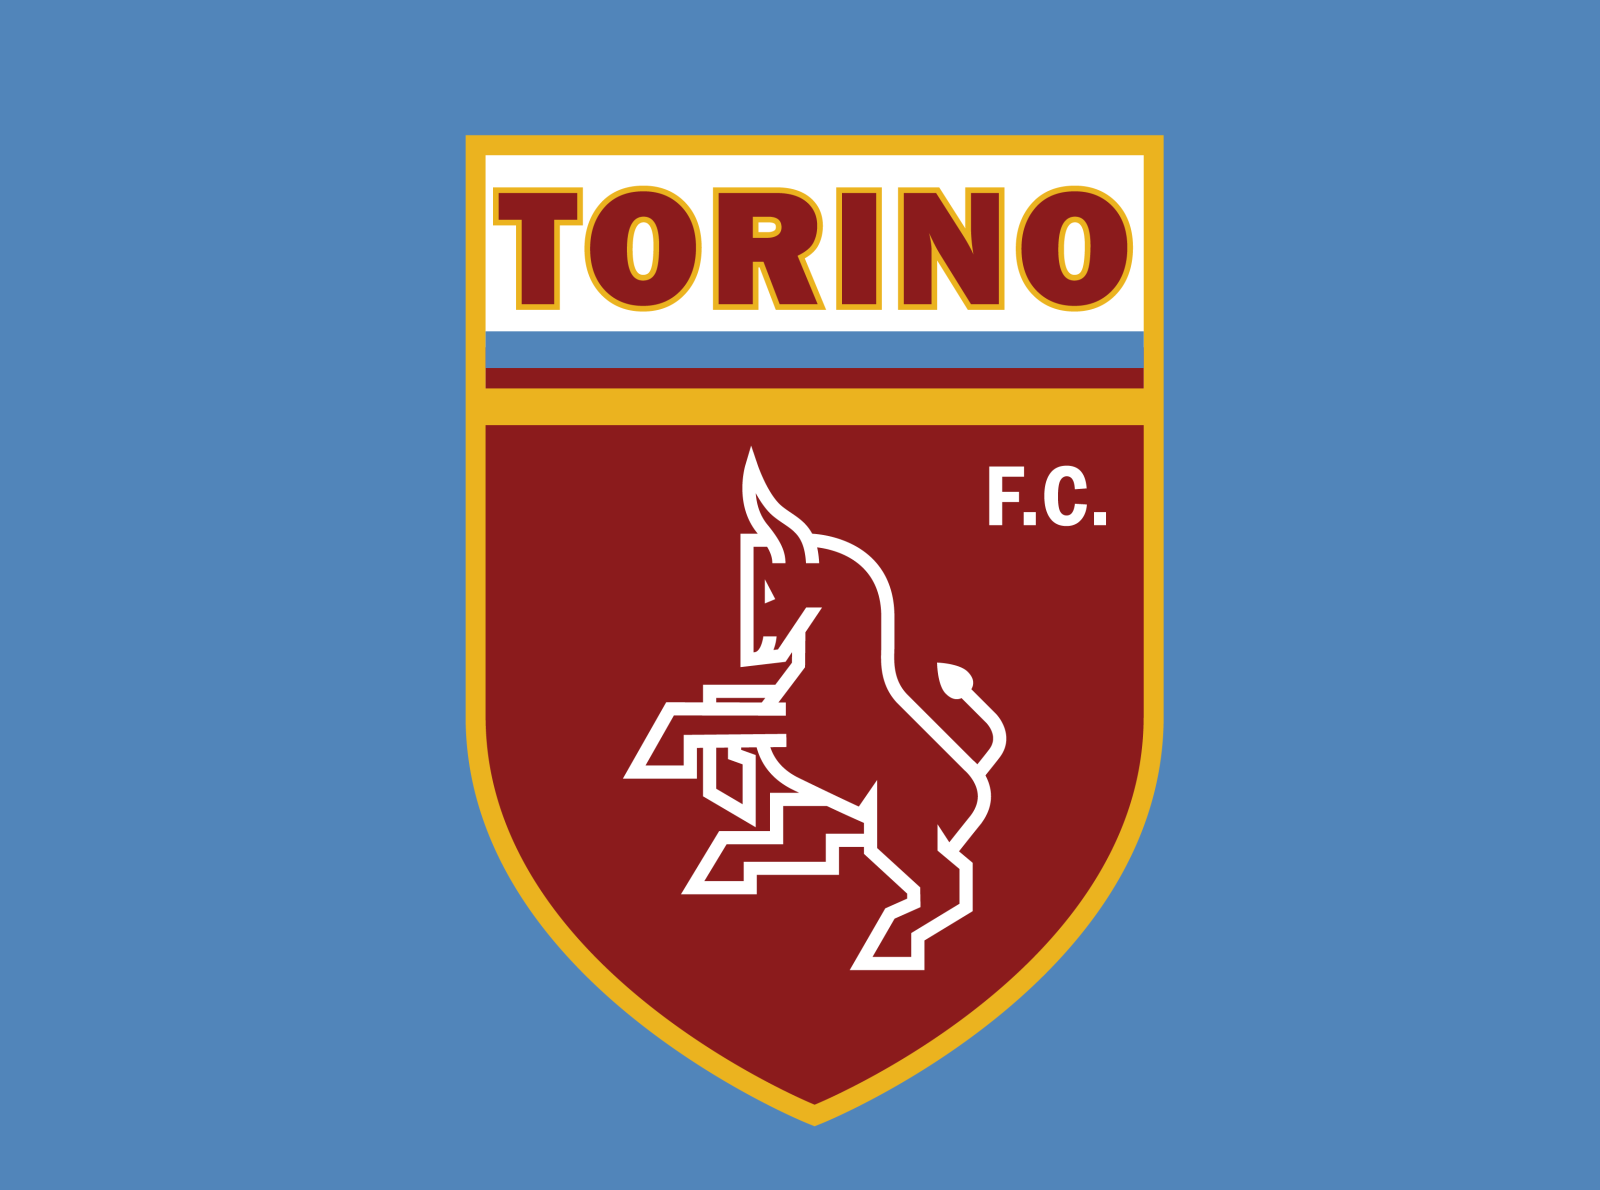 Torino Fc By Marcin Marszalek On Dribbble